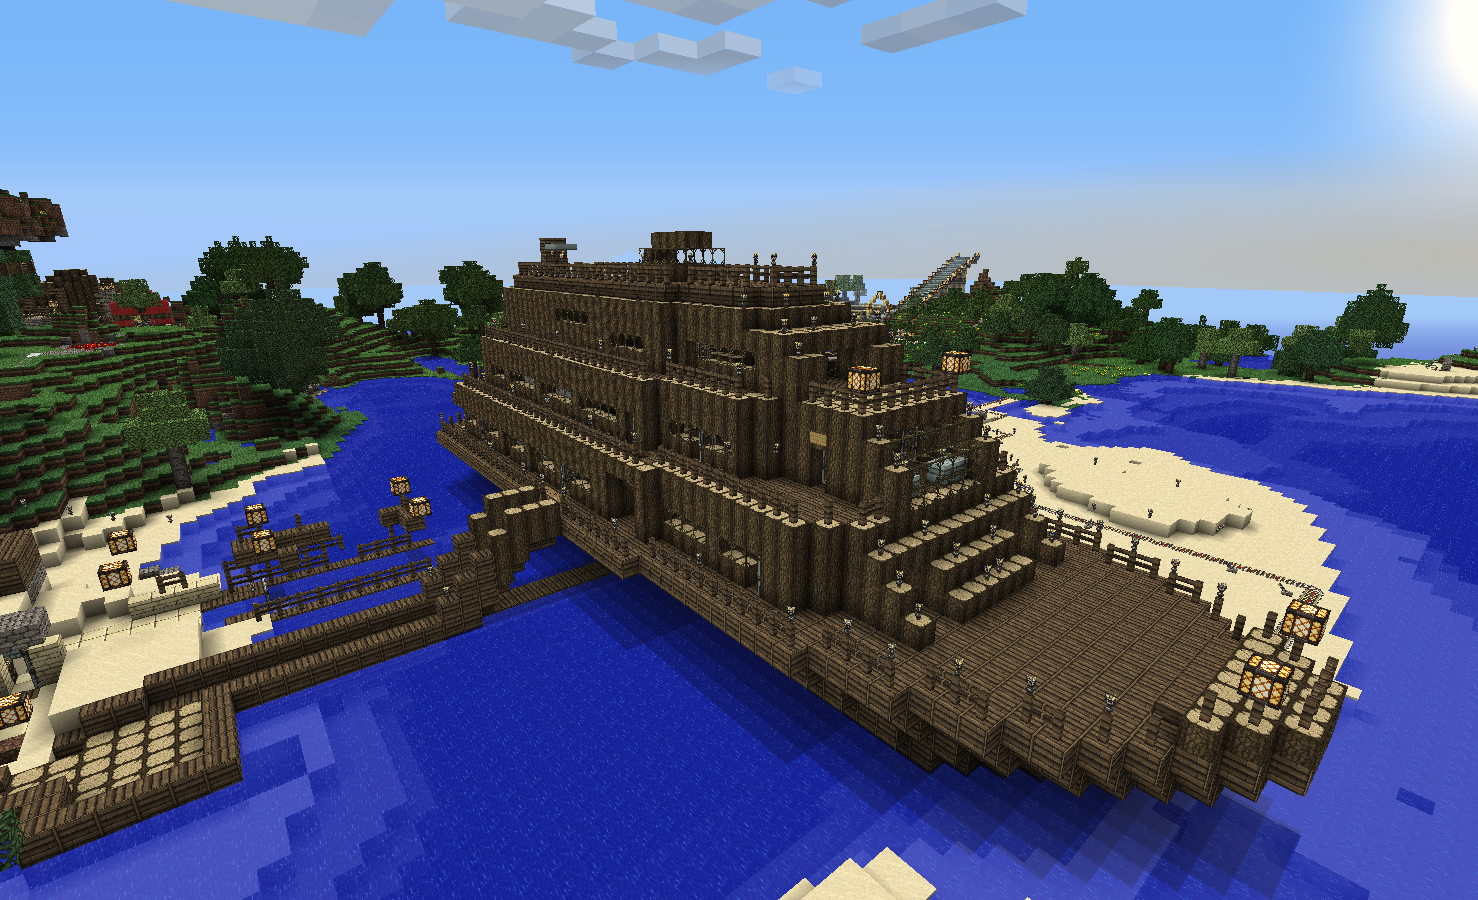 The Art of Architecture: The Minecraft Cruise Liner